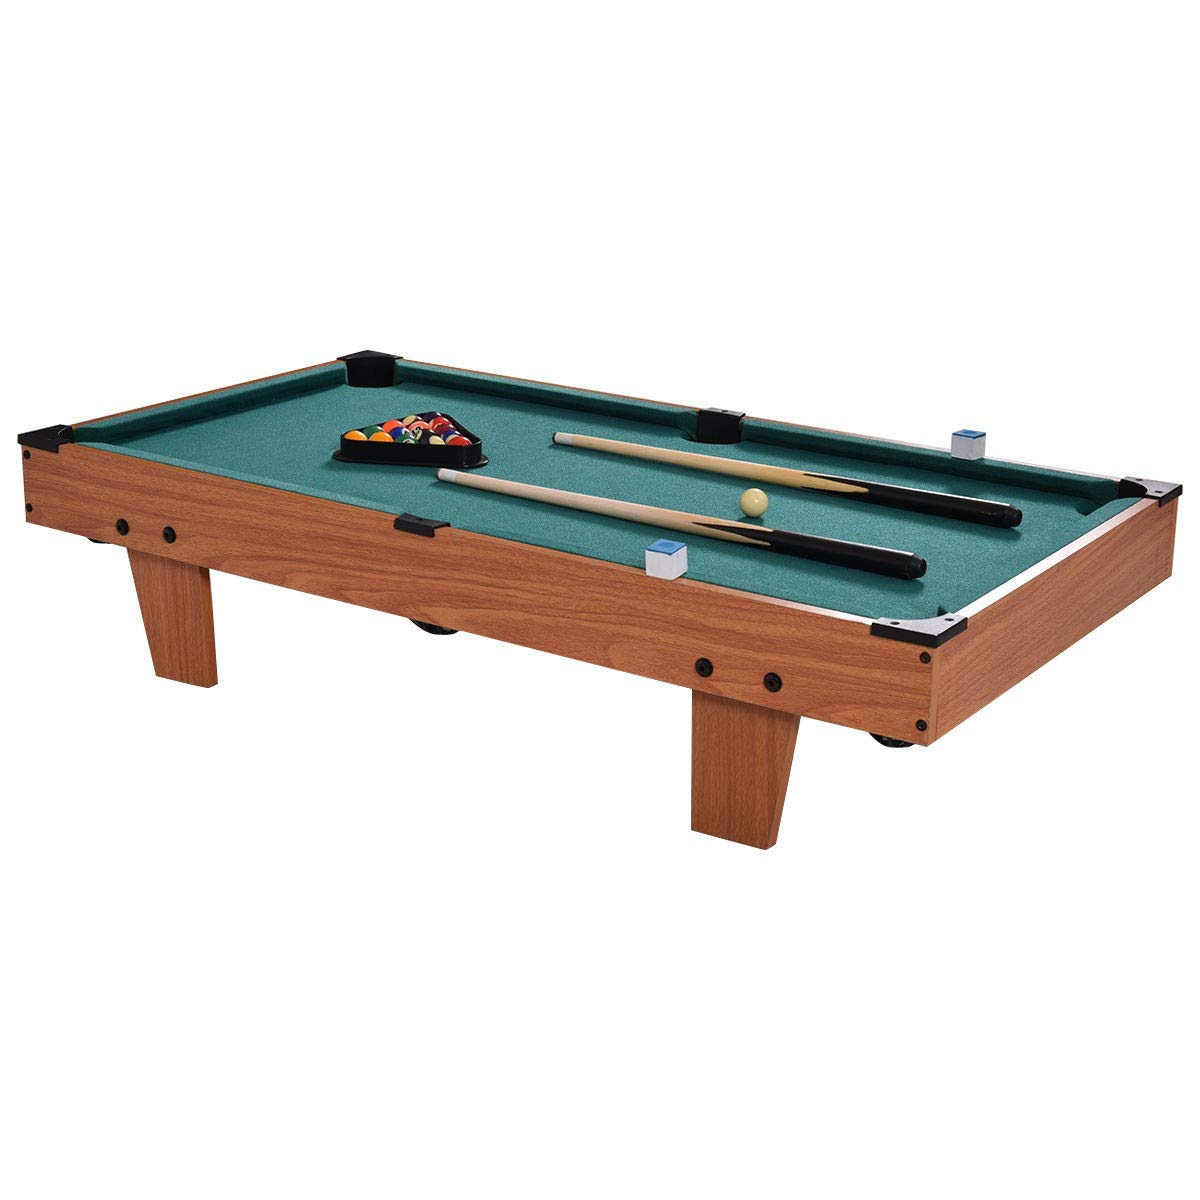 36'' Indoor Mini Table Top Pool Table by Abbeydh